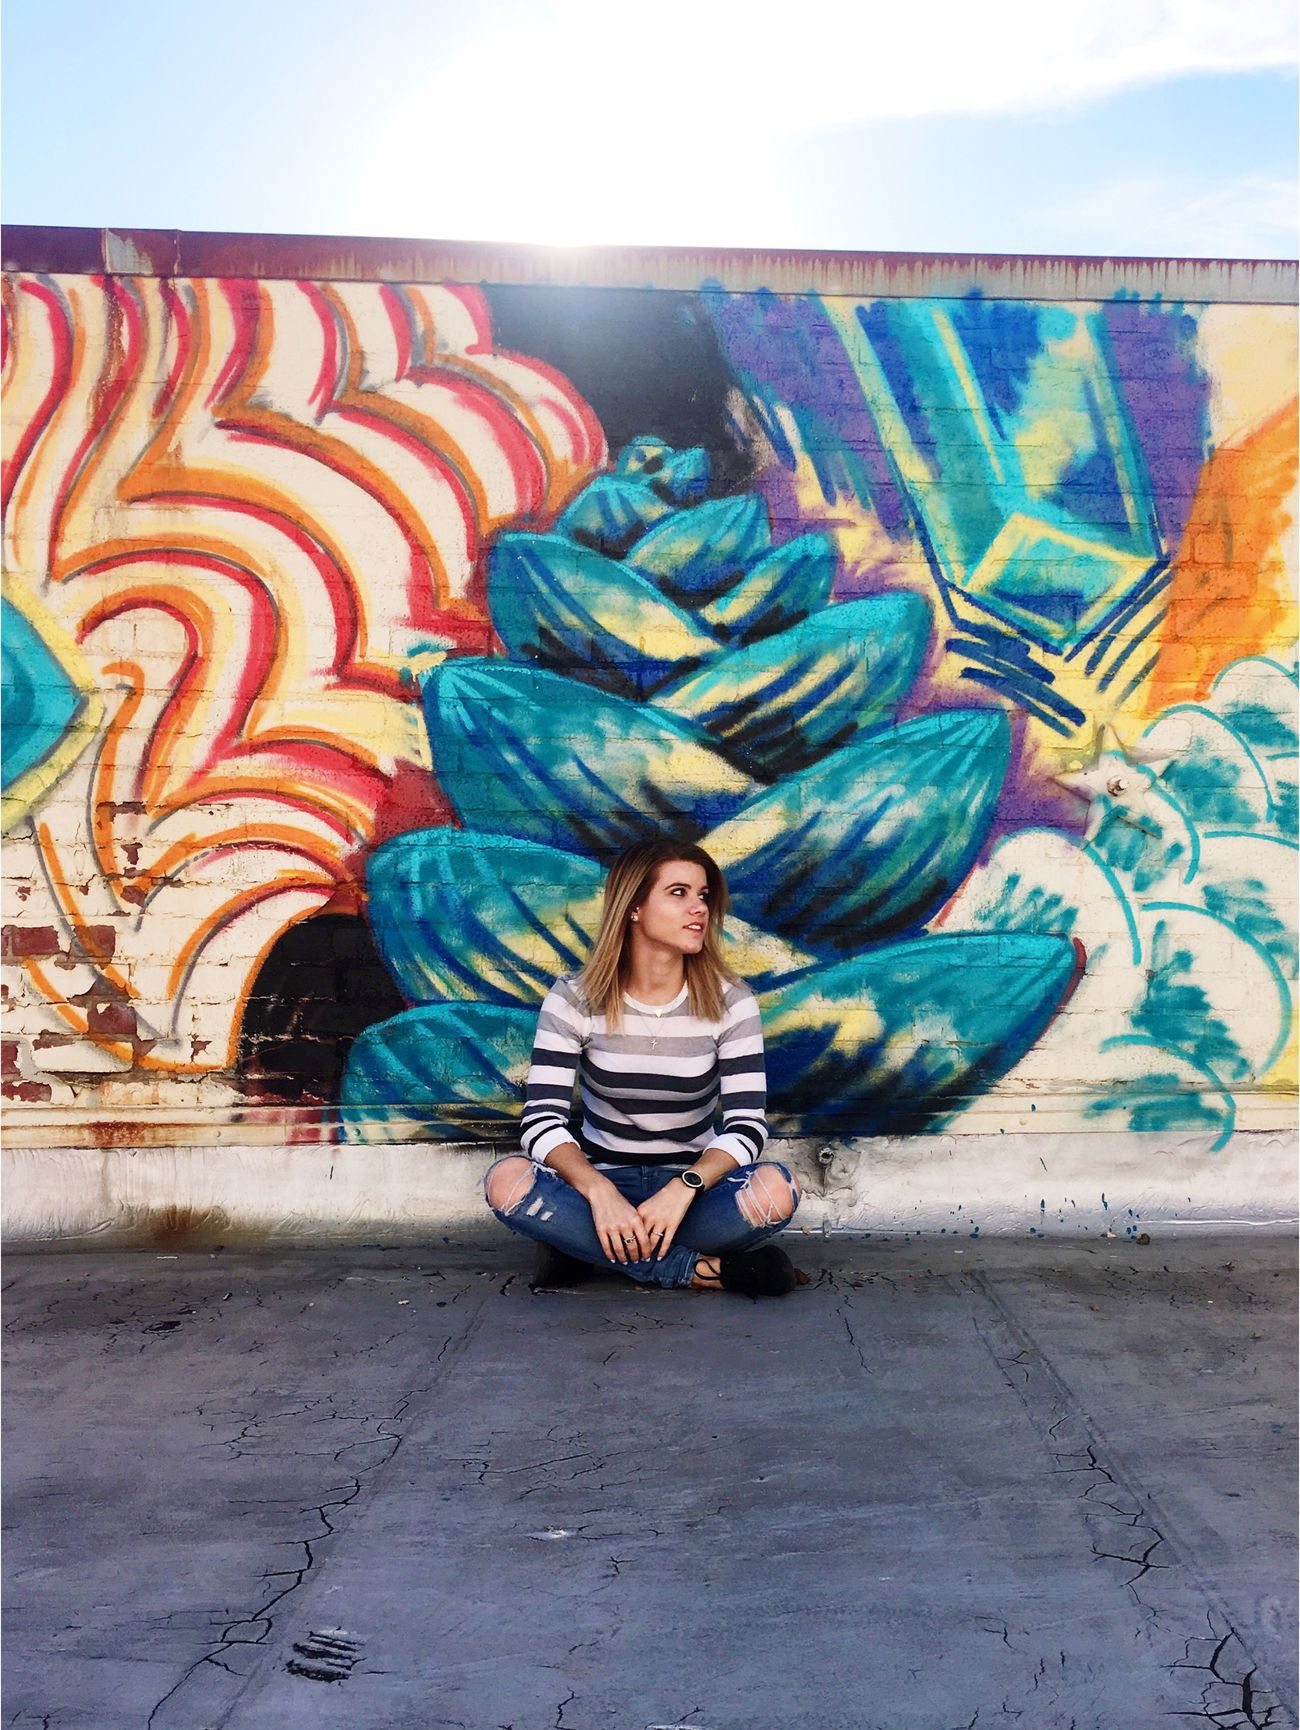 Full Length Casual Clothing One Person Multi Colored Cross-legged Sitting Beautiful Woman Front View Outdoors Young Adult Day Beauty Young Women Portrait People Urban Exploration Urbanphotography Urban City Real People Building Exterior Graffiti Art Graffiti Women Creativity